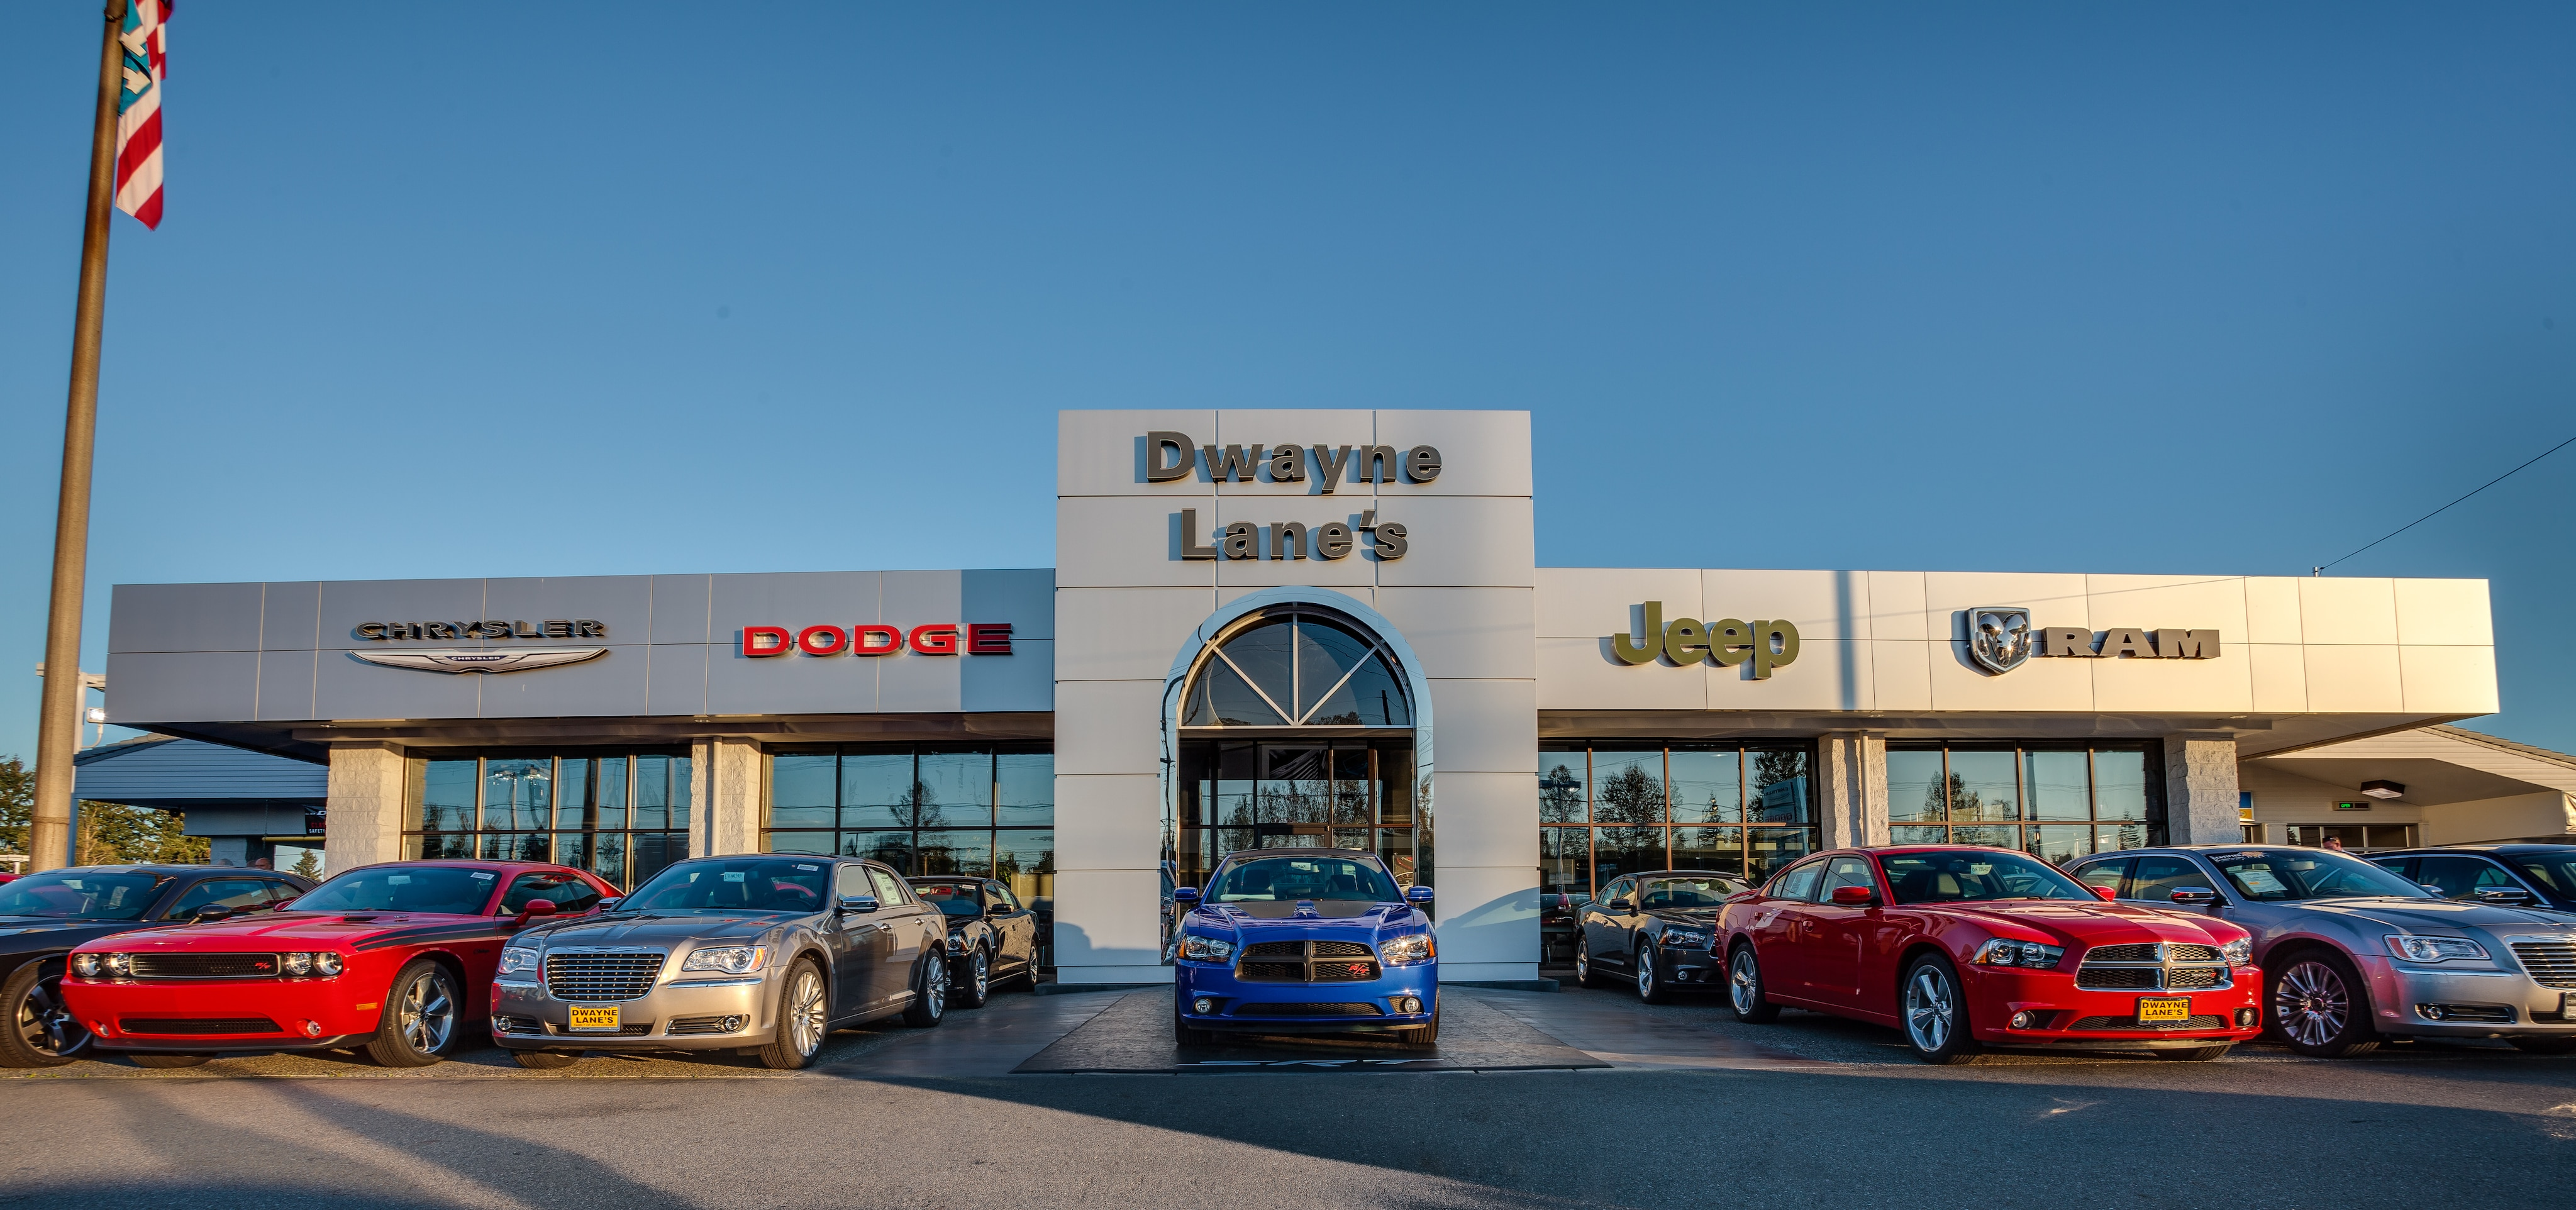 Learn more about Dwayne Lane's Chrysler Jeep Dodge Ram in Everett, WA